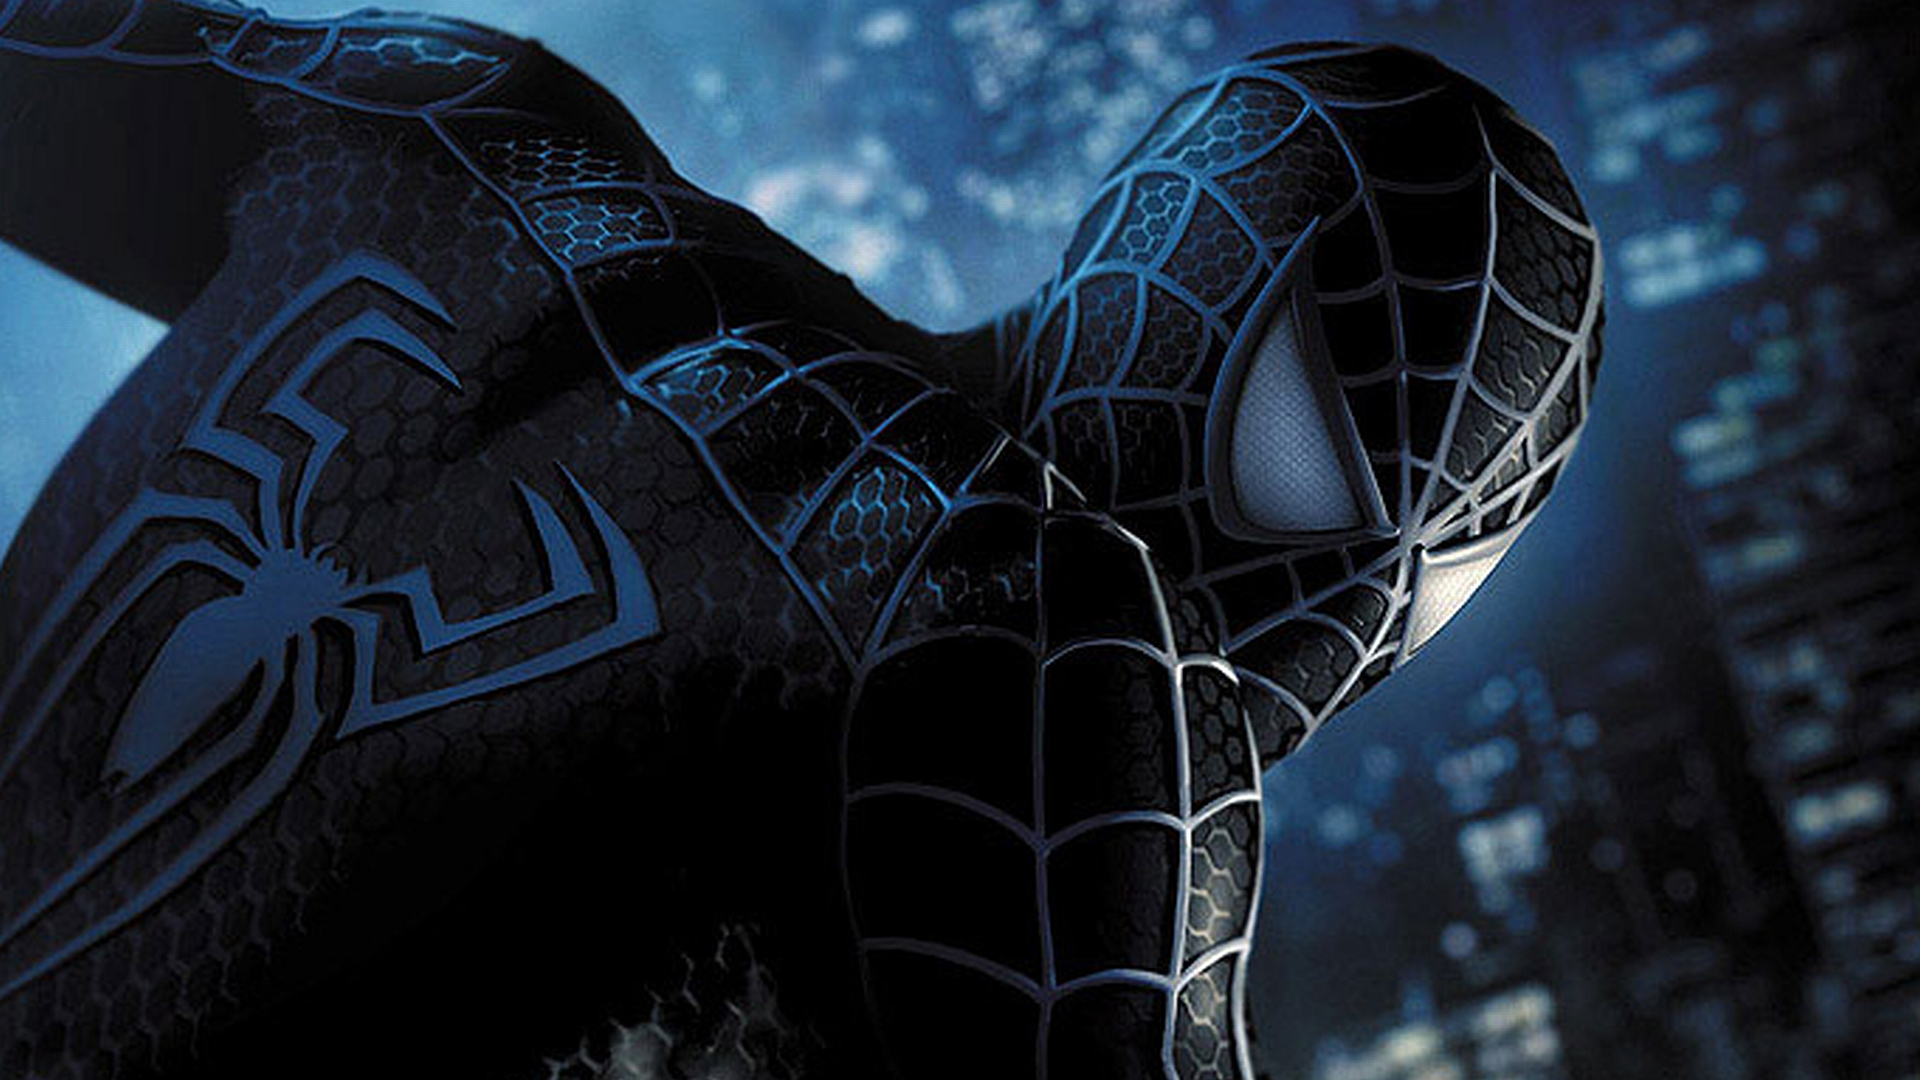 spider-man full hd wallpaper and background image | 1920x1080 | id